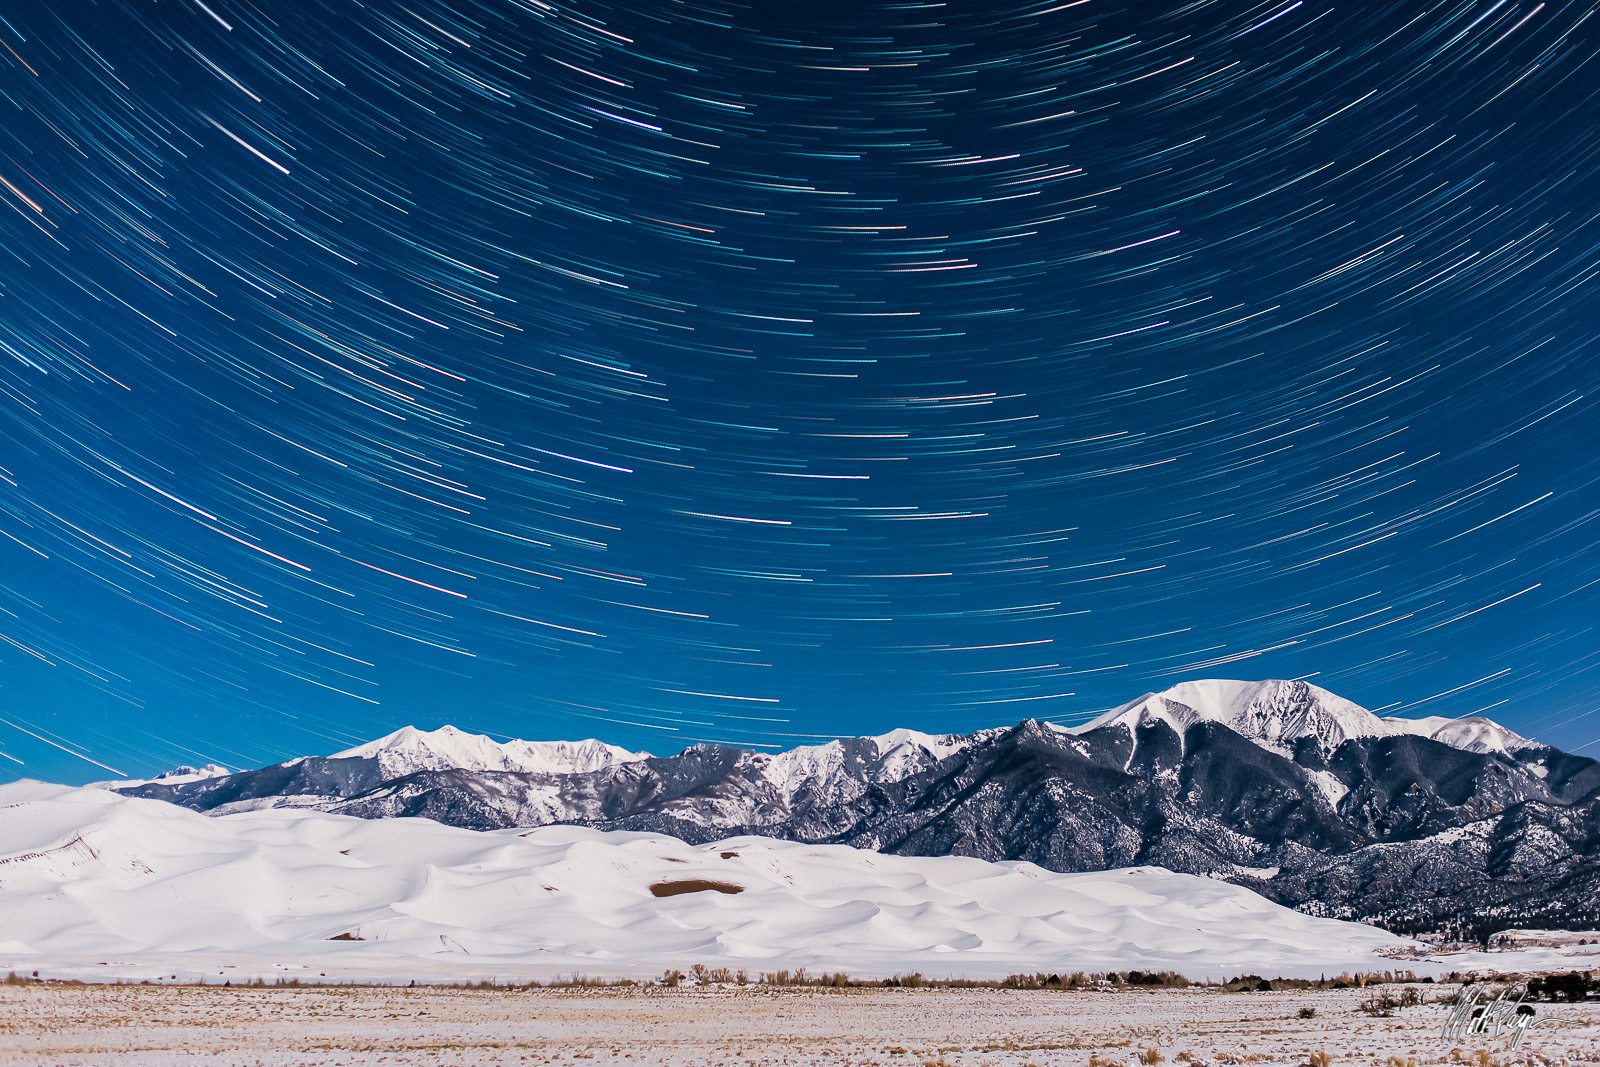 Great Sand Dunes National Park, Star Trails, Mountains, Night, Sangre de Cristo, Stars, Colorado, desert, Landscape Photography, photo